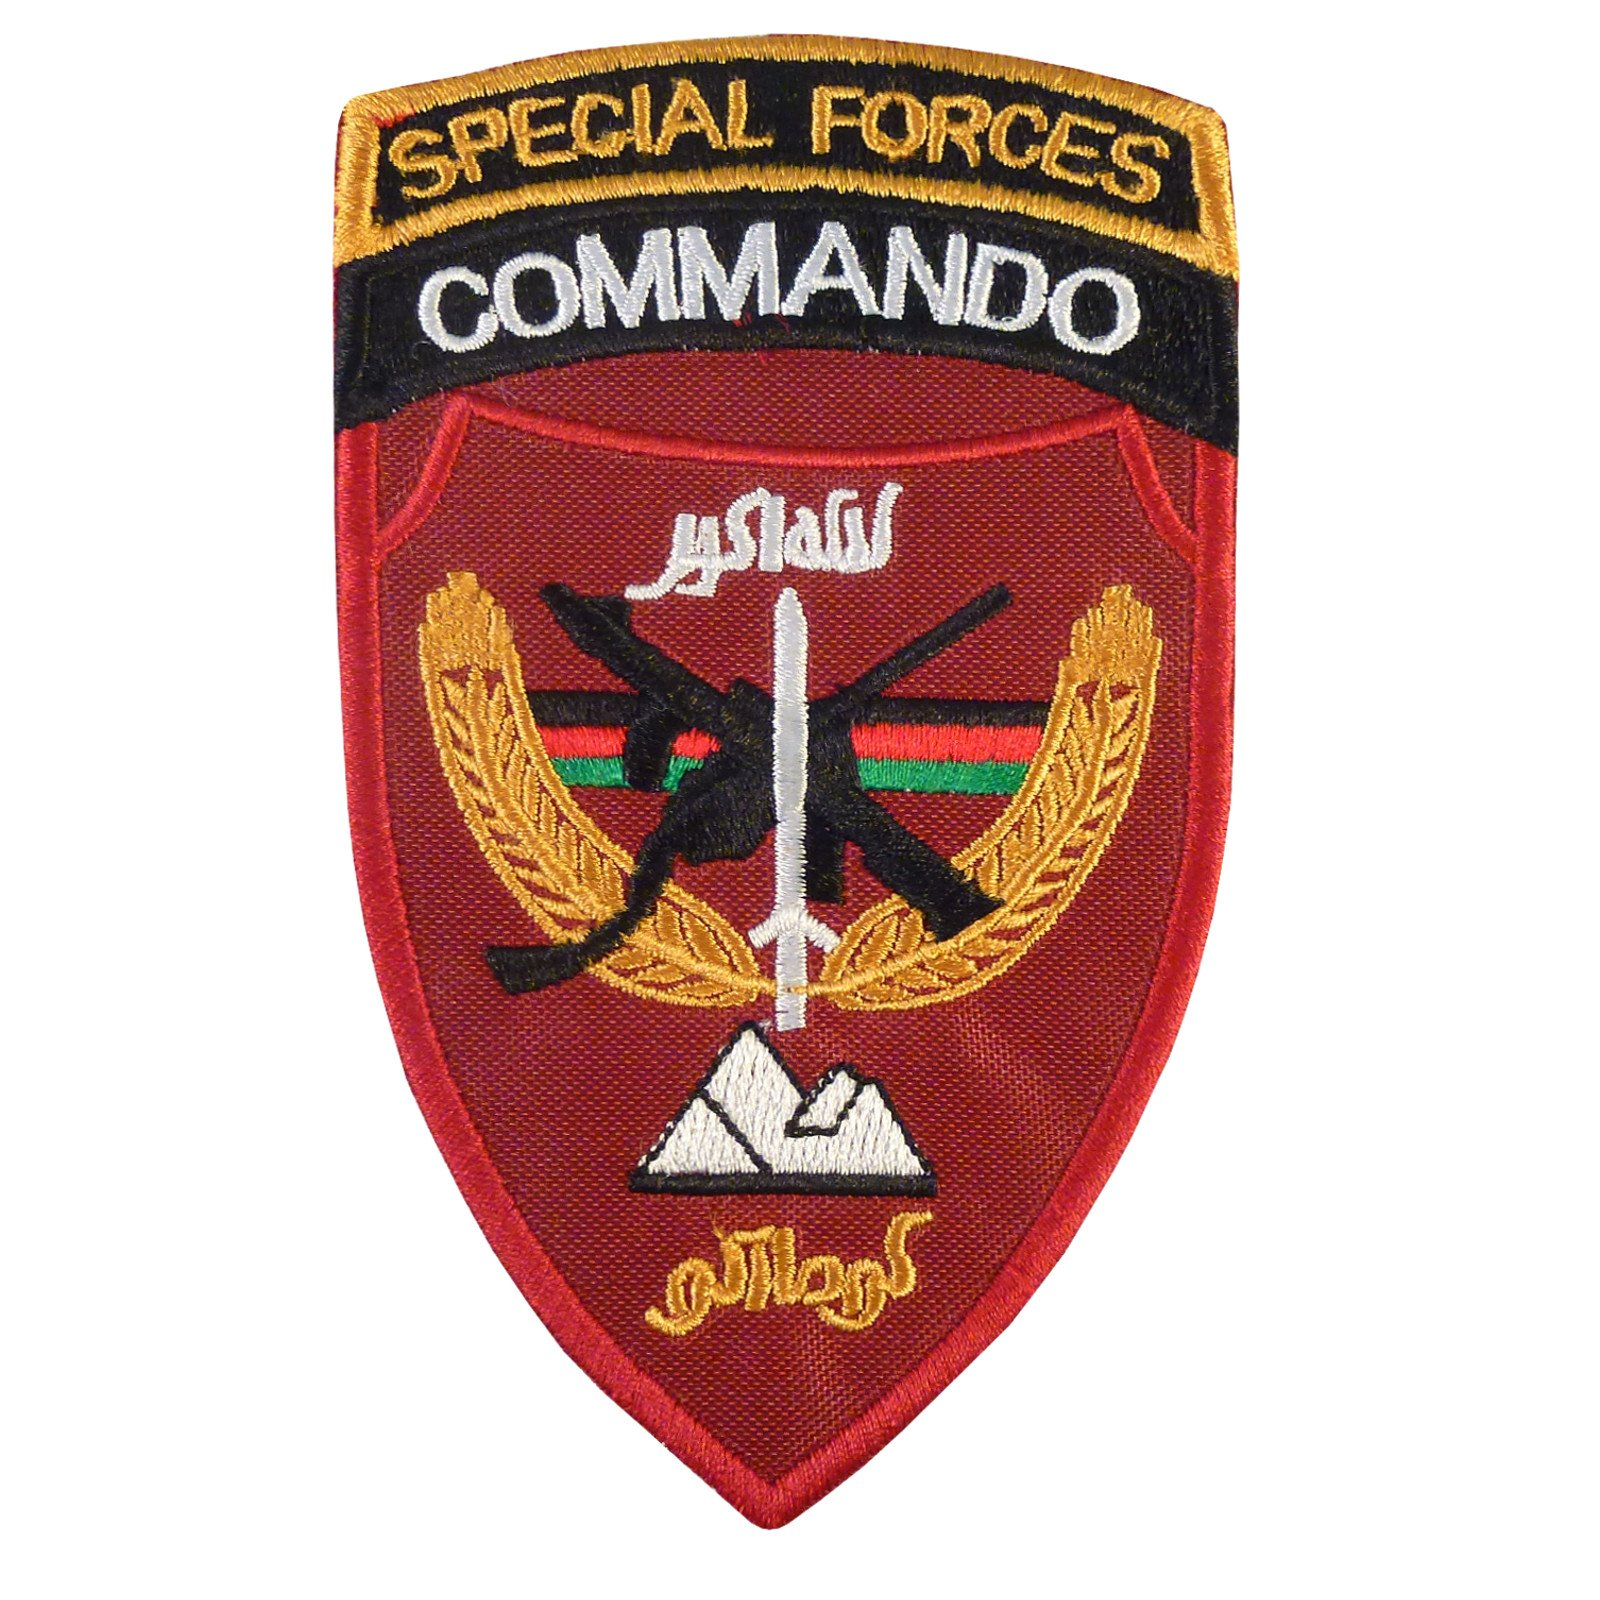 Afghanistan Special Forces Commando MARSOC ANASF ANA Afghan Esercito Army Fastener Toppa Patch